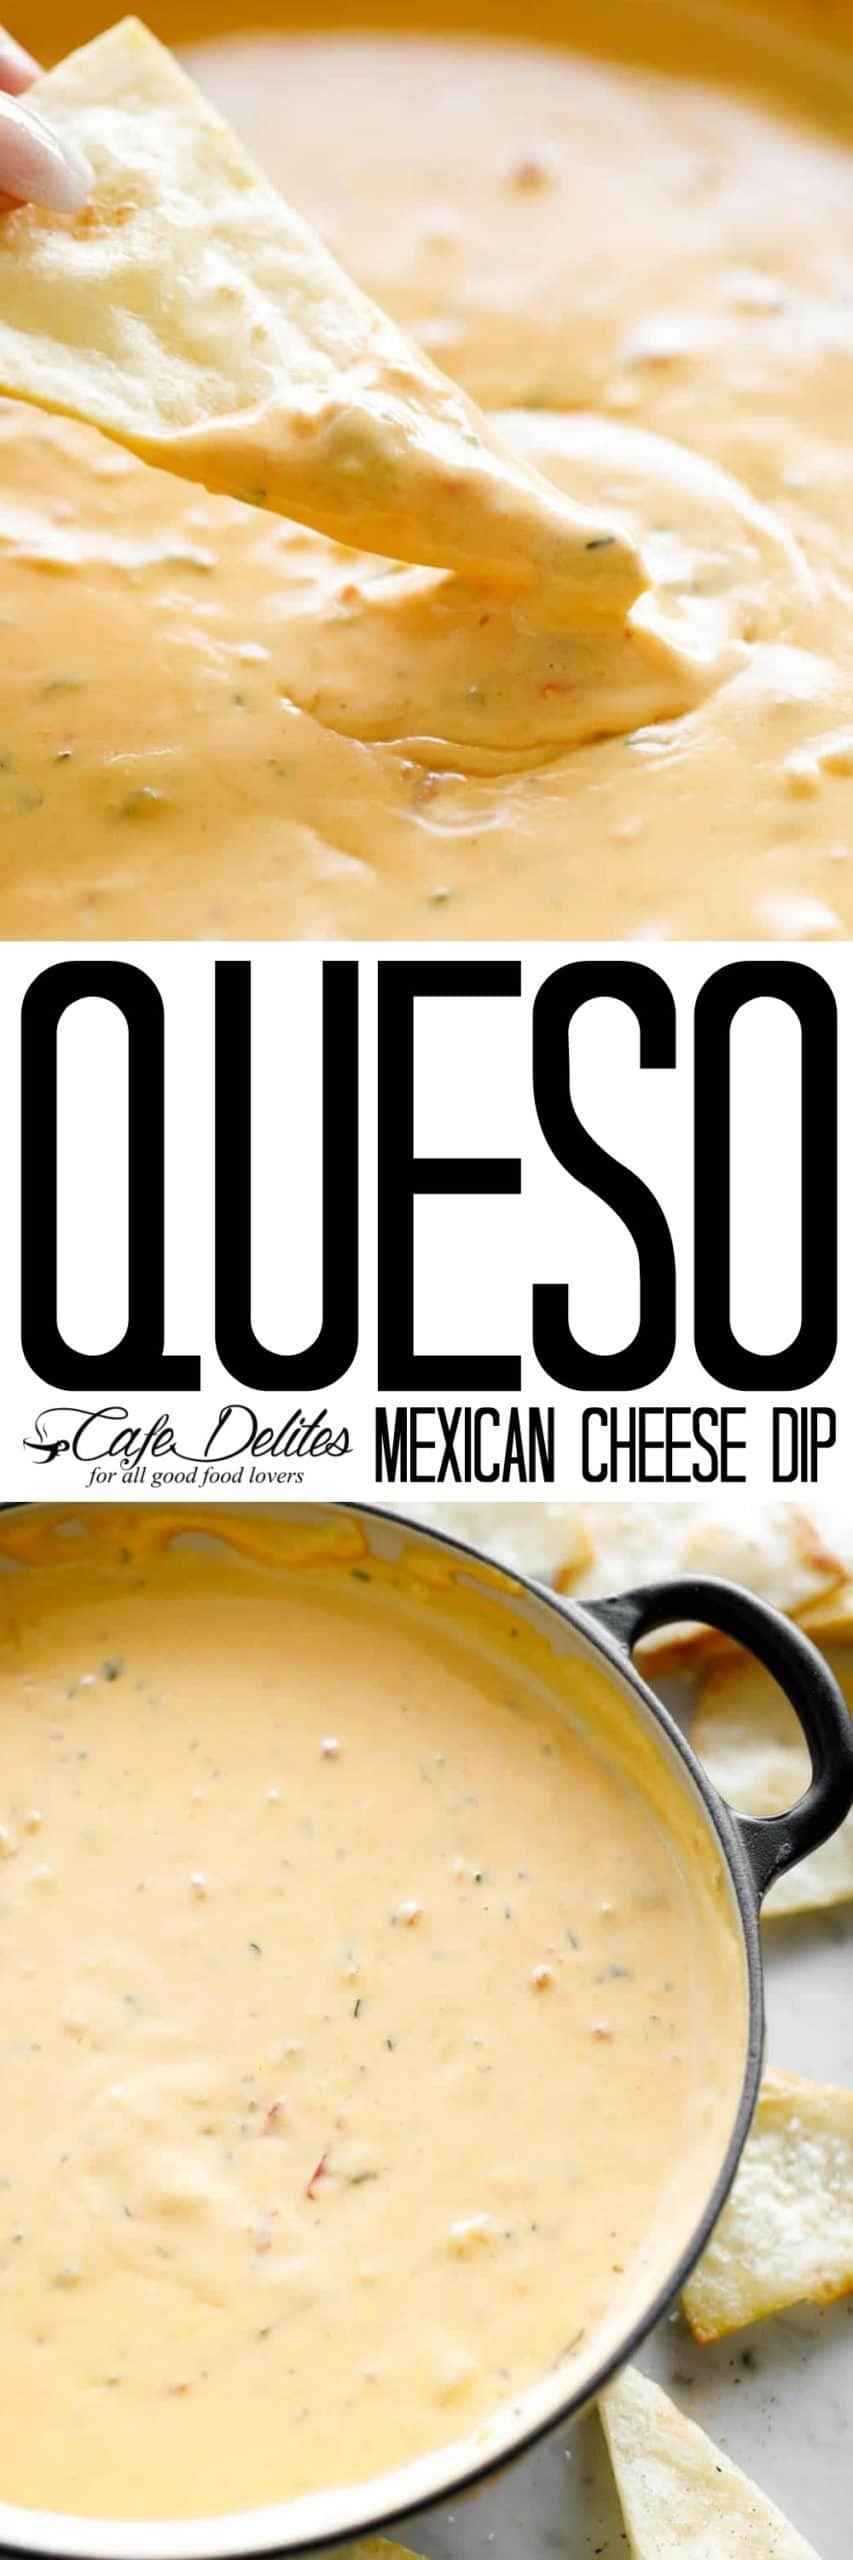 Queso Mexican Cheese Dip | cafedelites.com